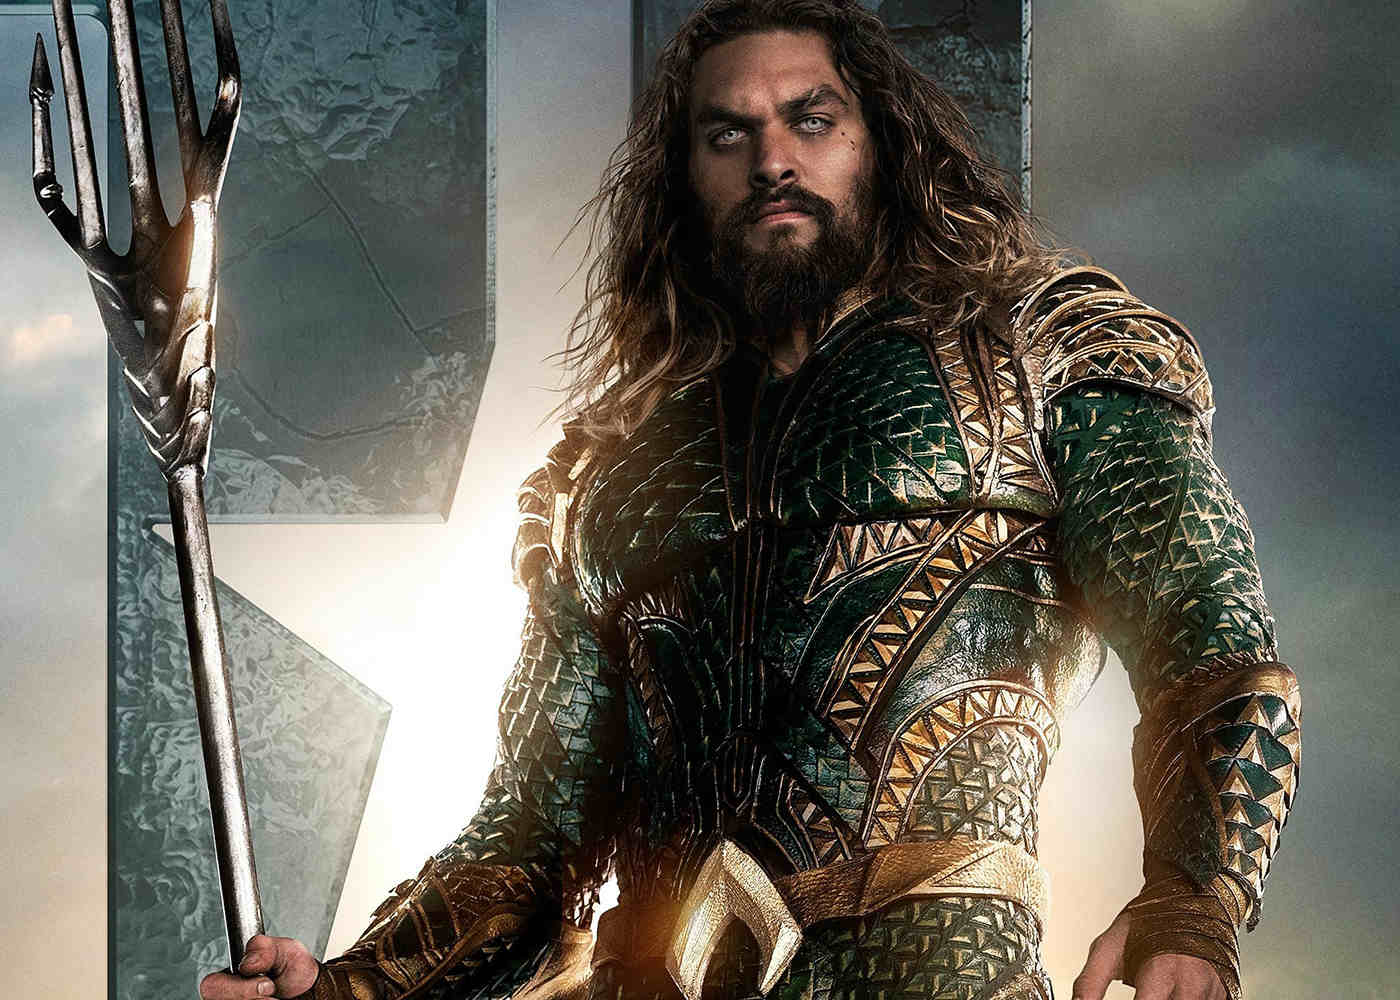 New Photo: See Aquaman's Armor and Props